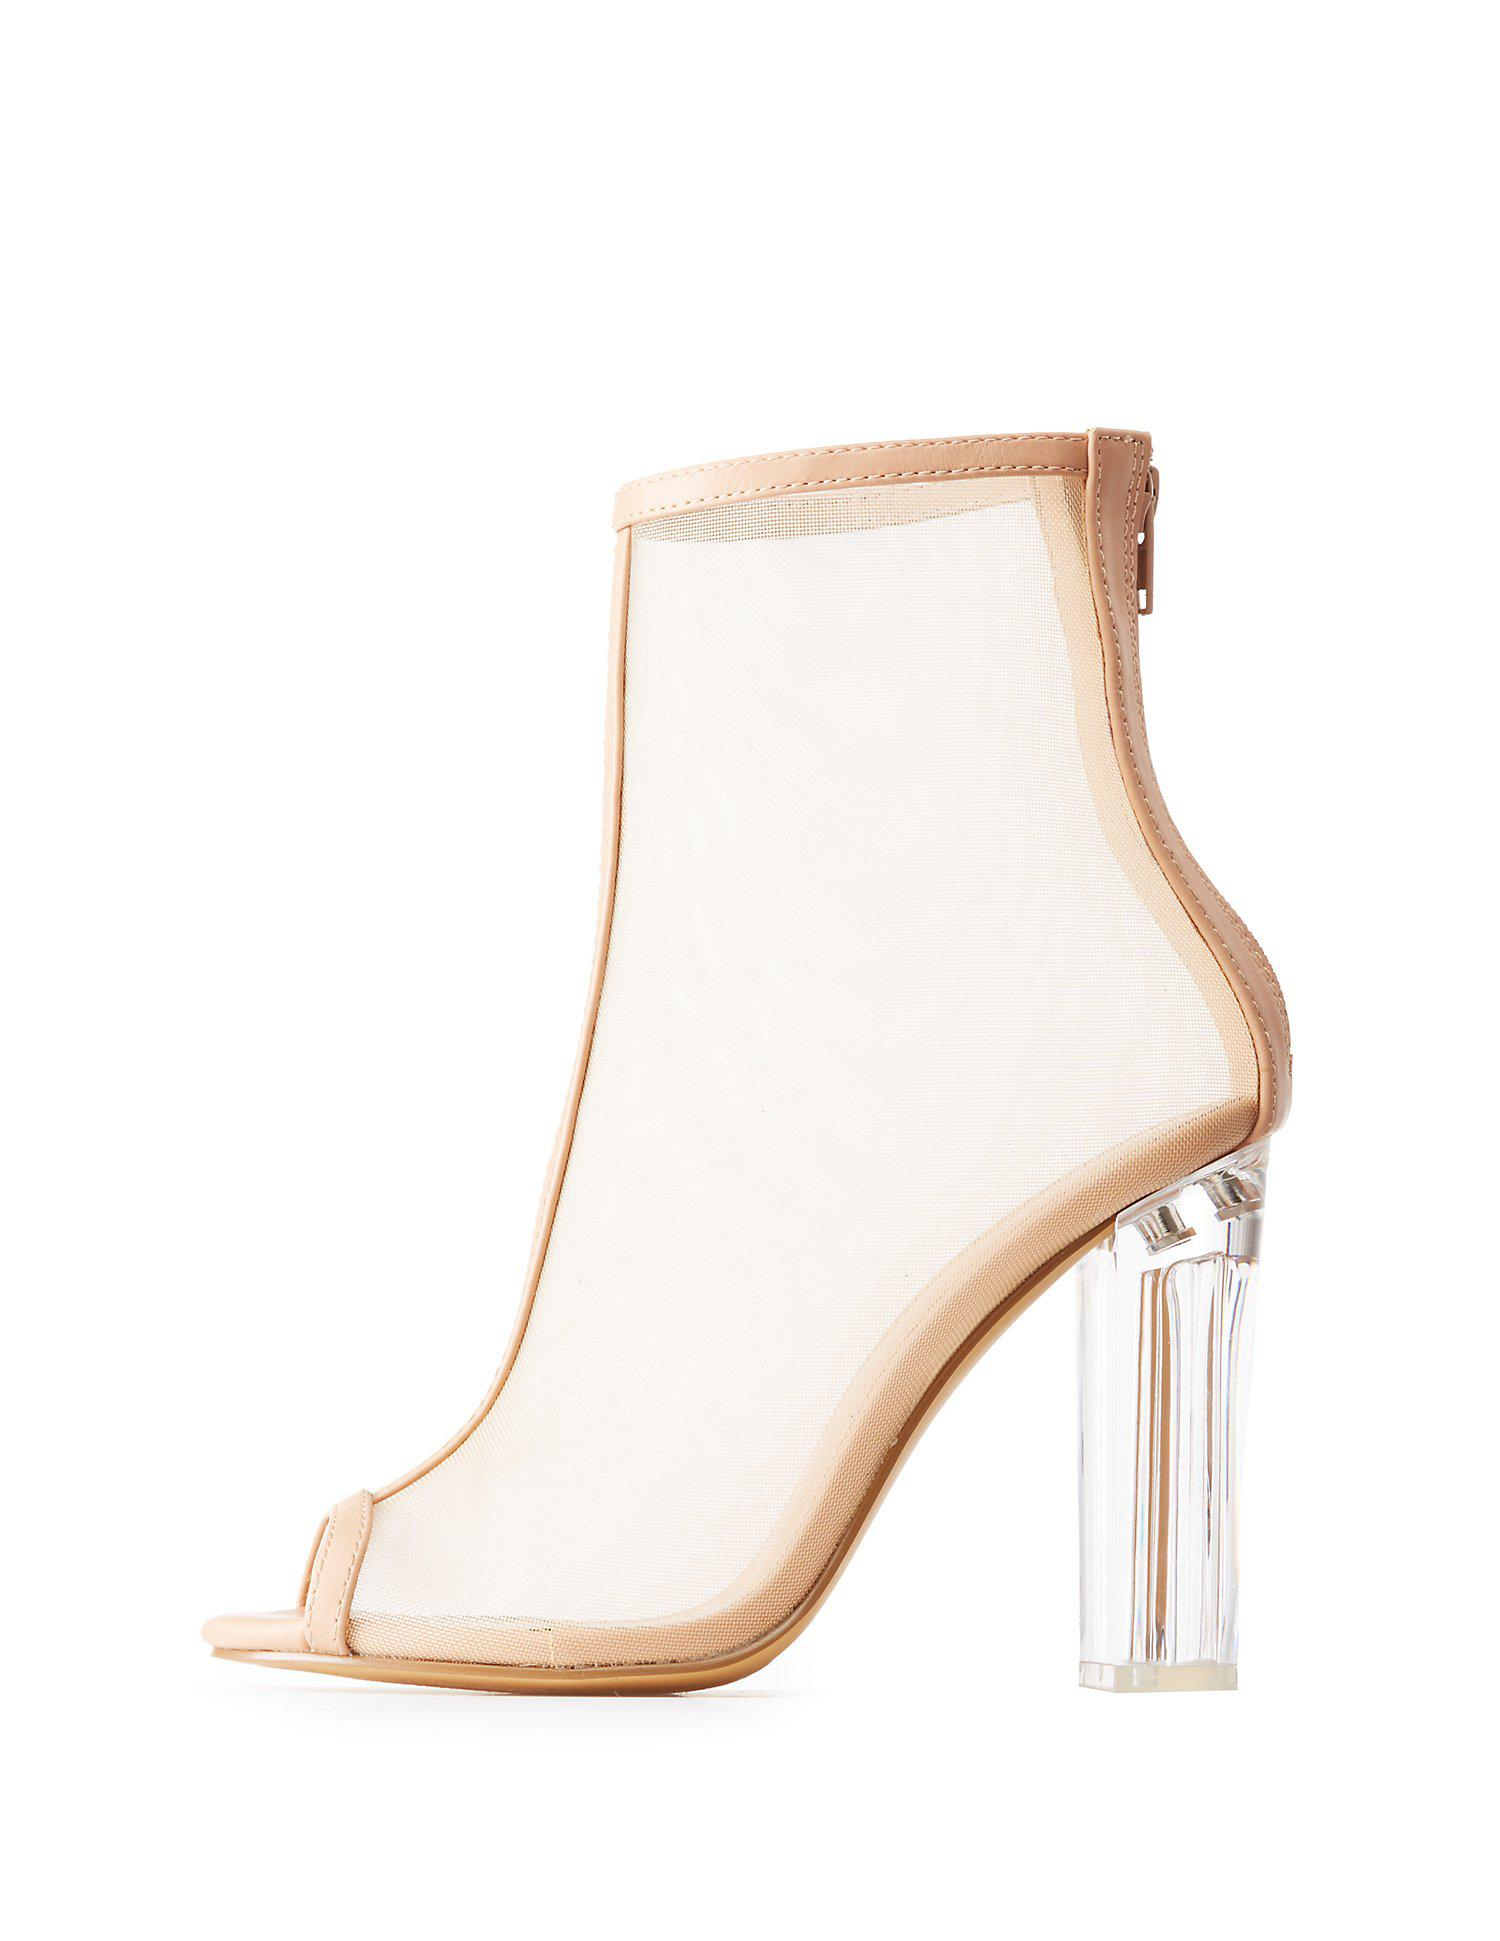 6e81f3642c7 Lyst - Charlotte Russe Mesh Peep Toe Lucite Heel Booties in Natural